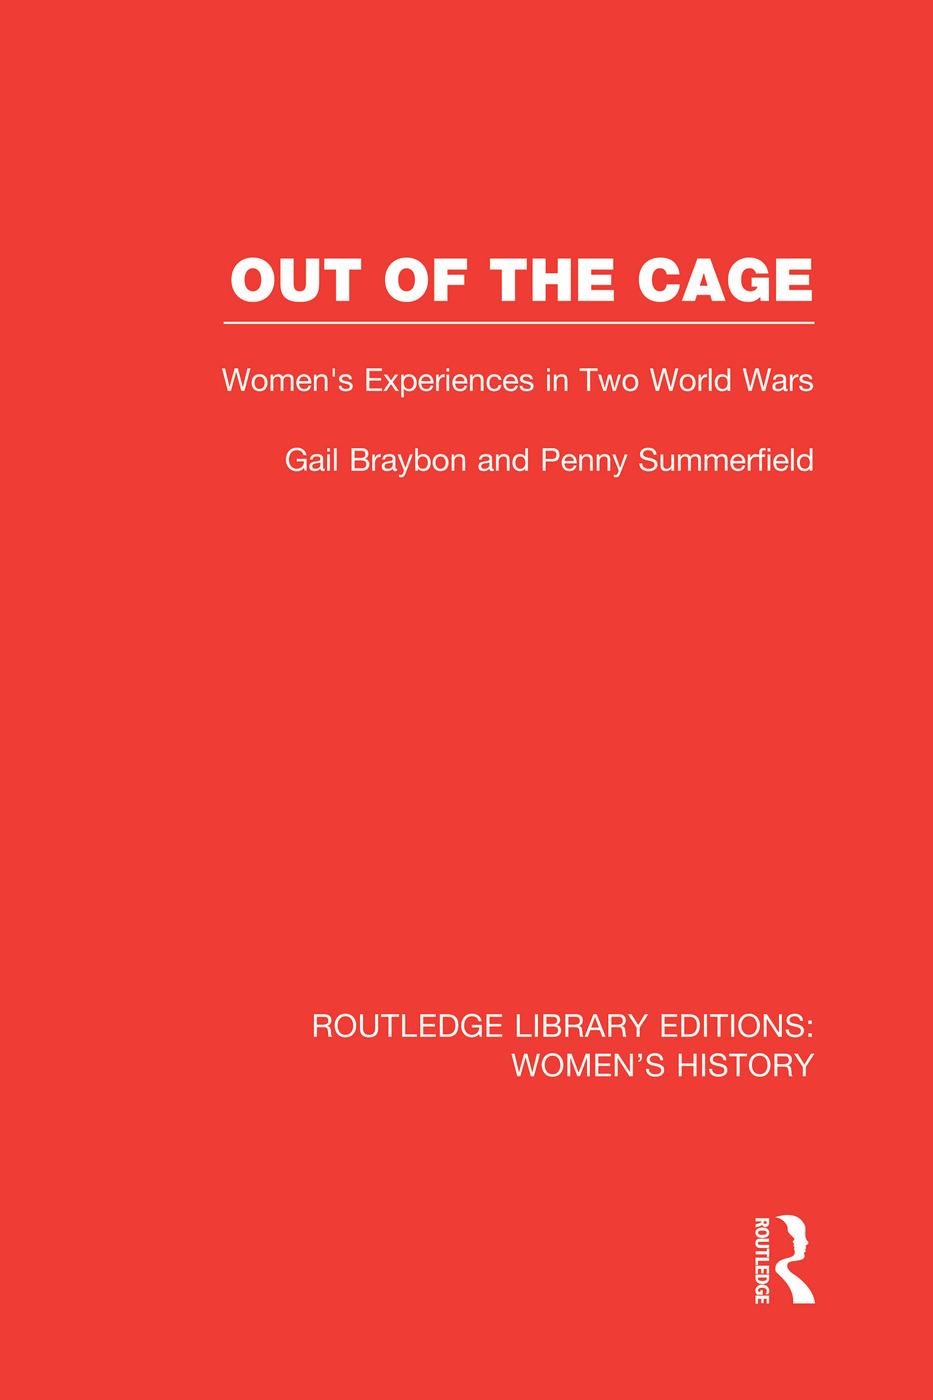 Out of the Cage: Women's Experiences in Two World Wars book cover